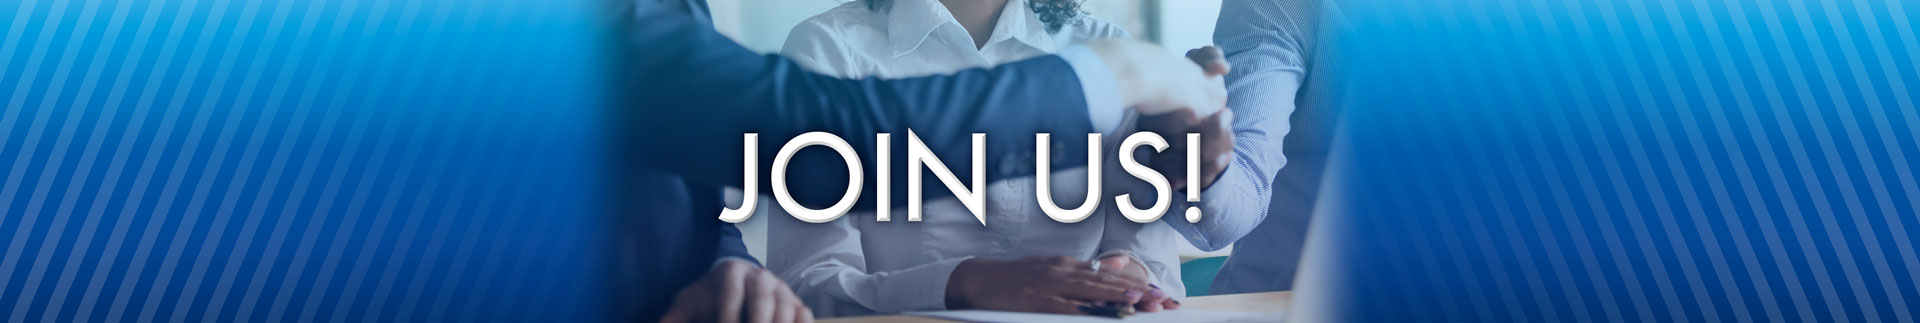 AccMan, Full-Service Accounting Firm, Seattle WA | Join Us